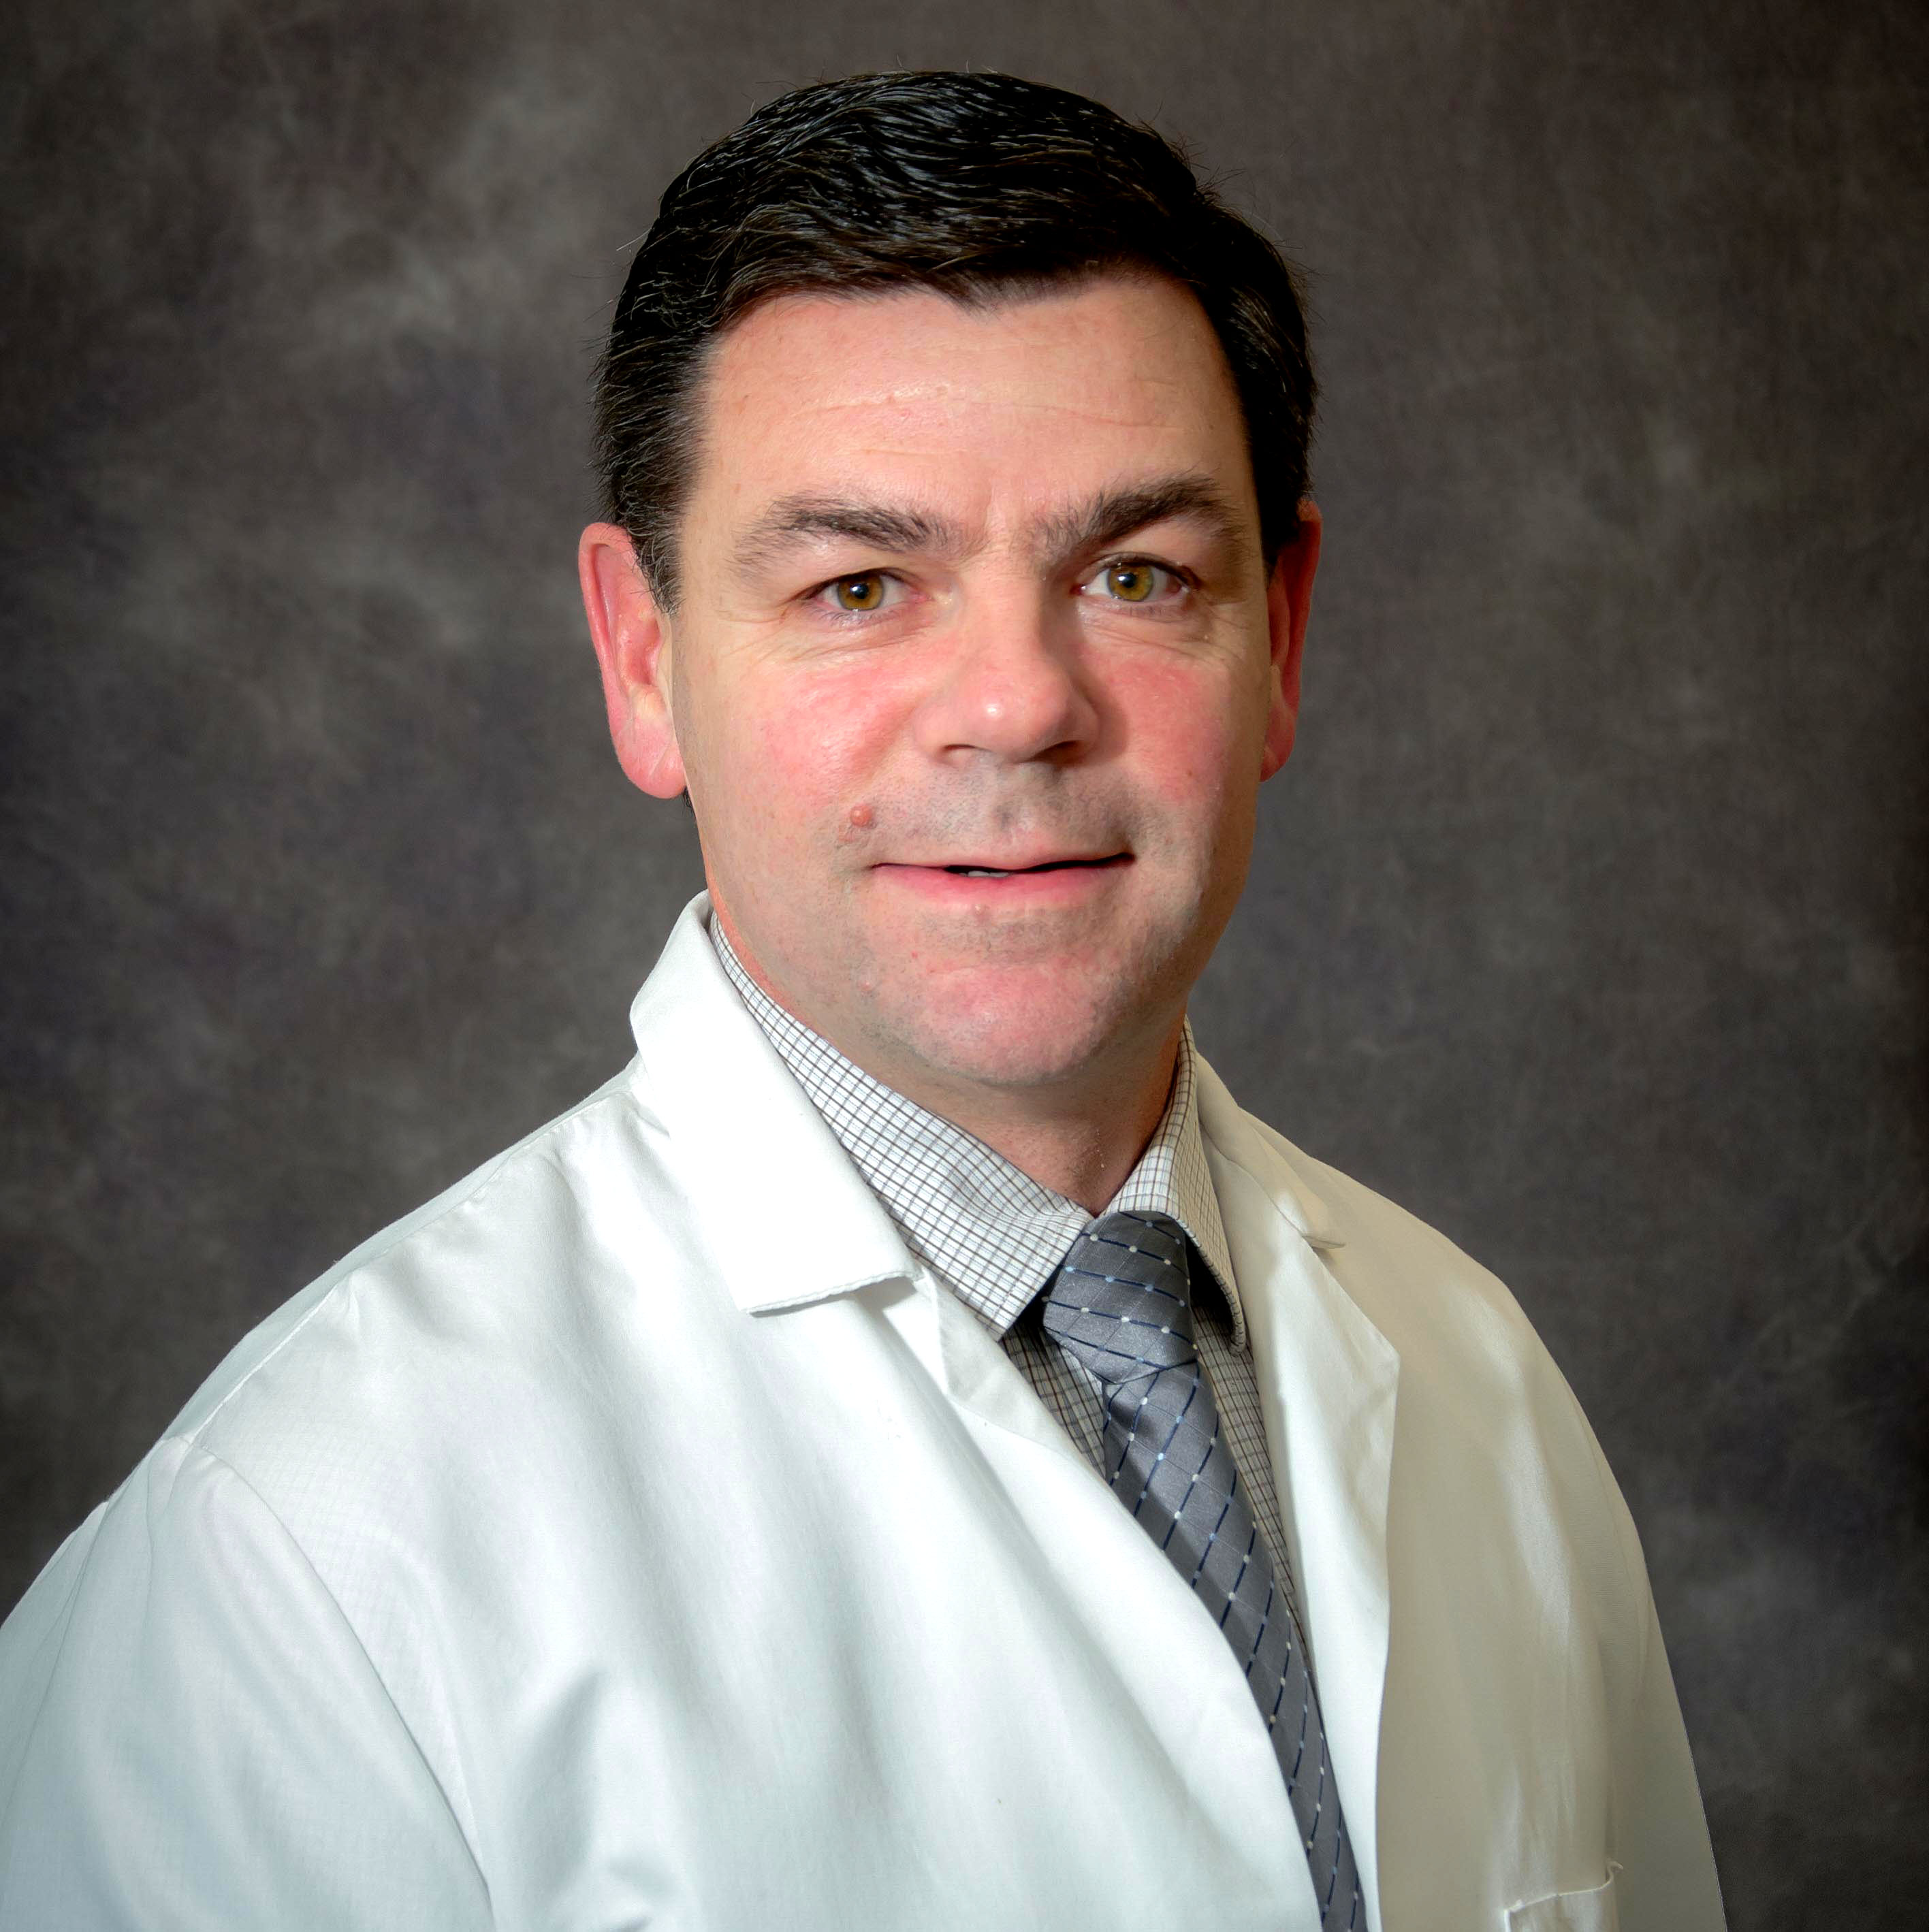 Dr. Steve Pennington Orthopedic Surgeon at Pullman Regional Hospital